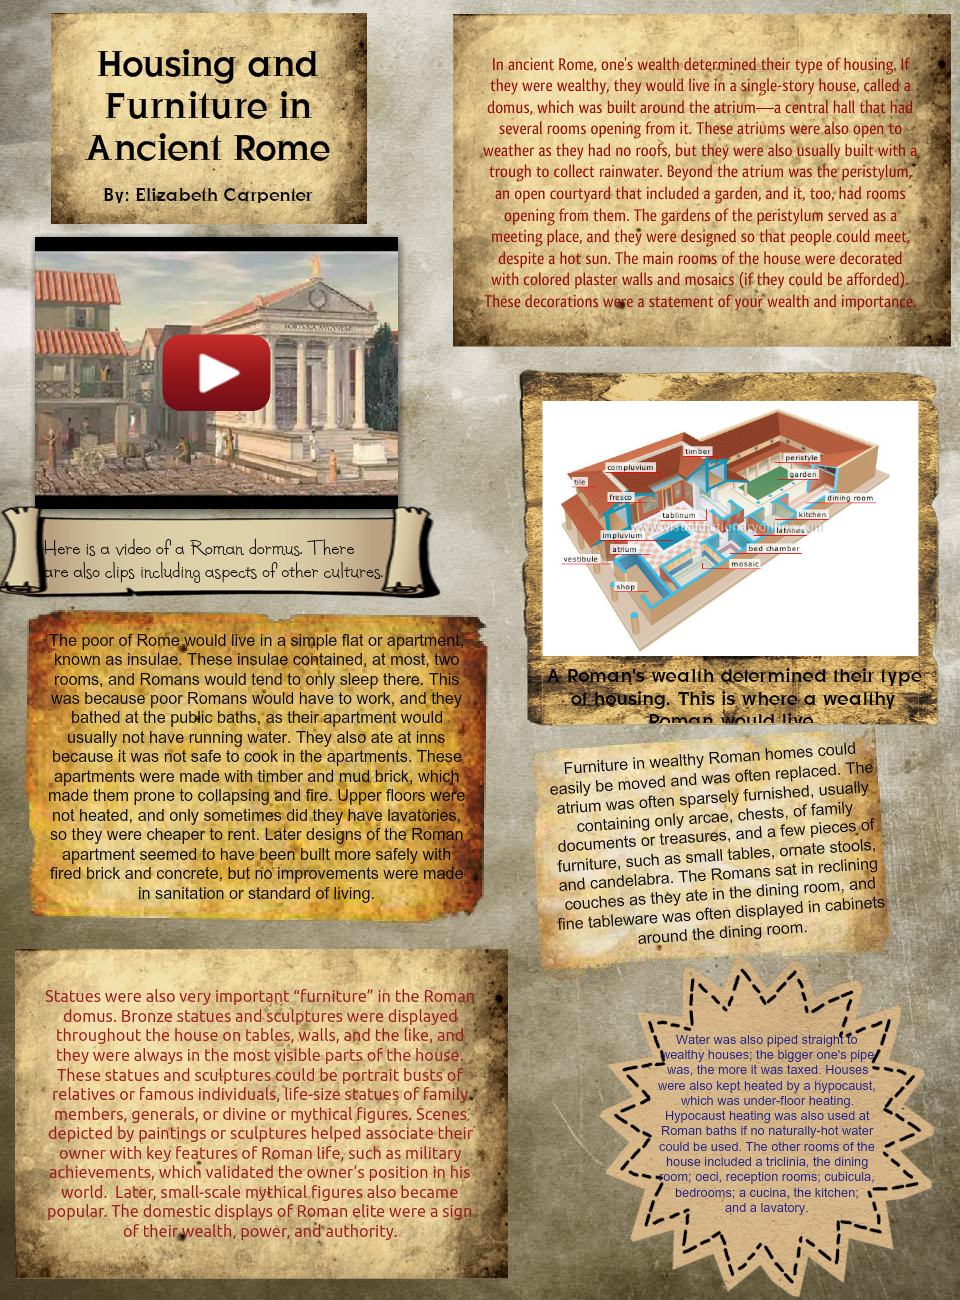 Housing and Furniture in Ancient Rome